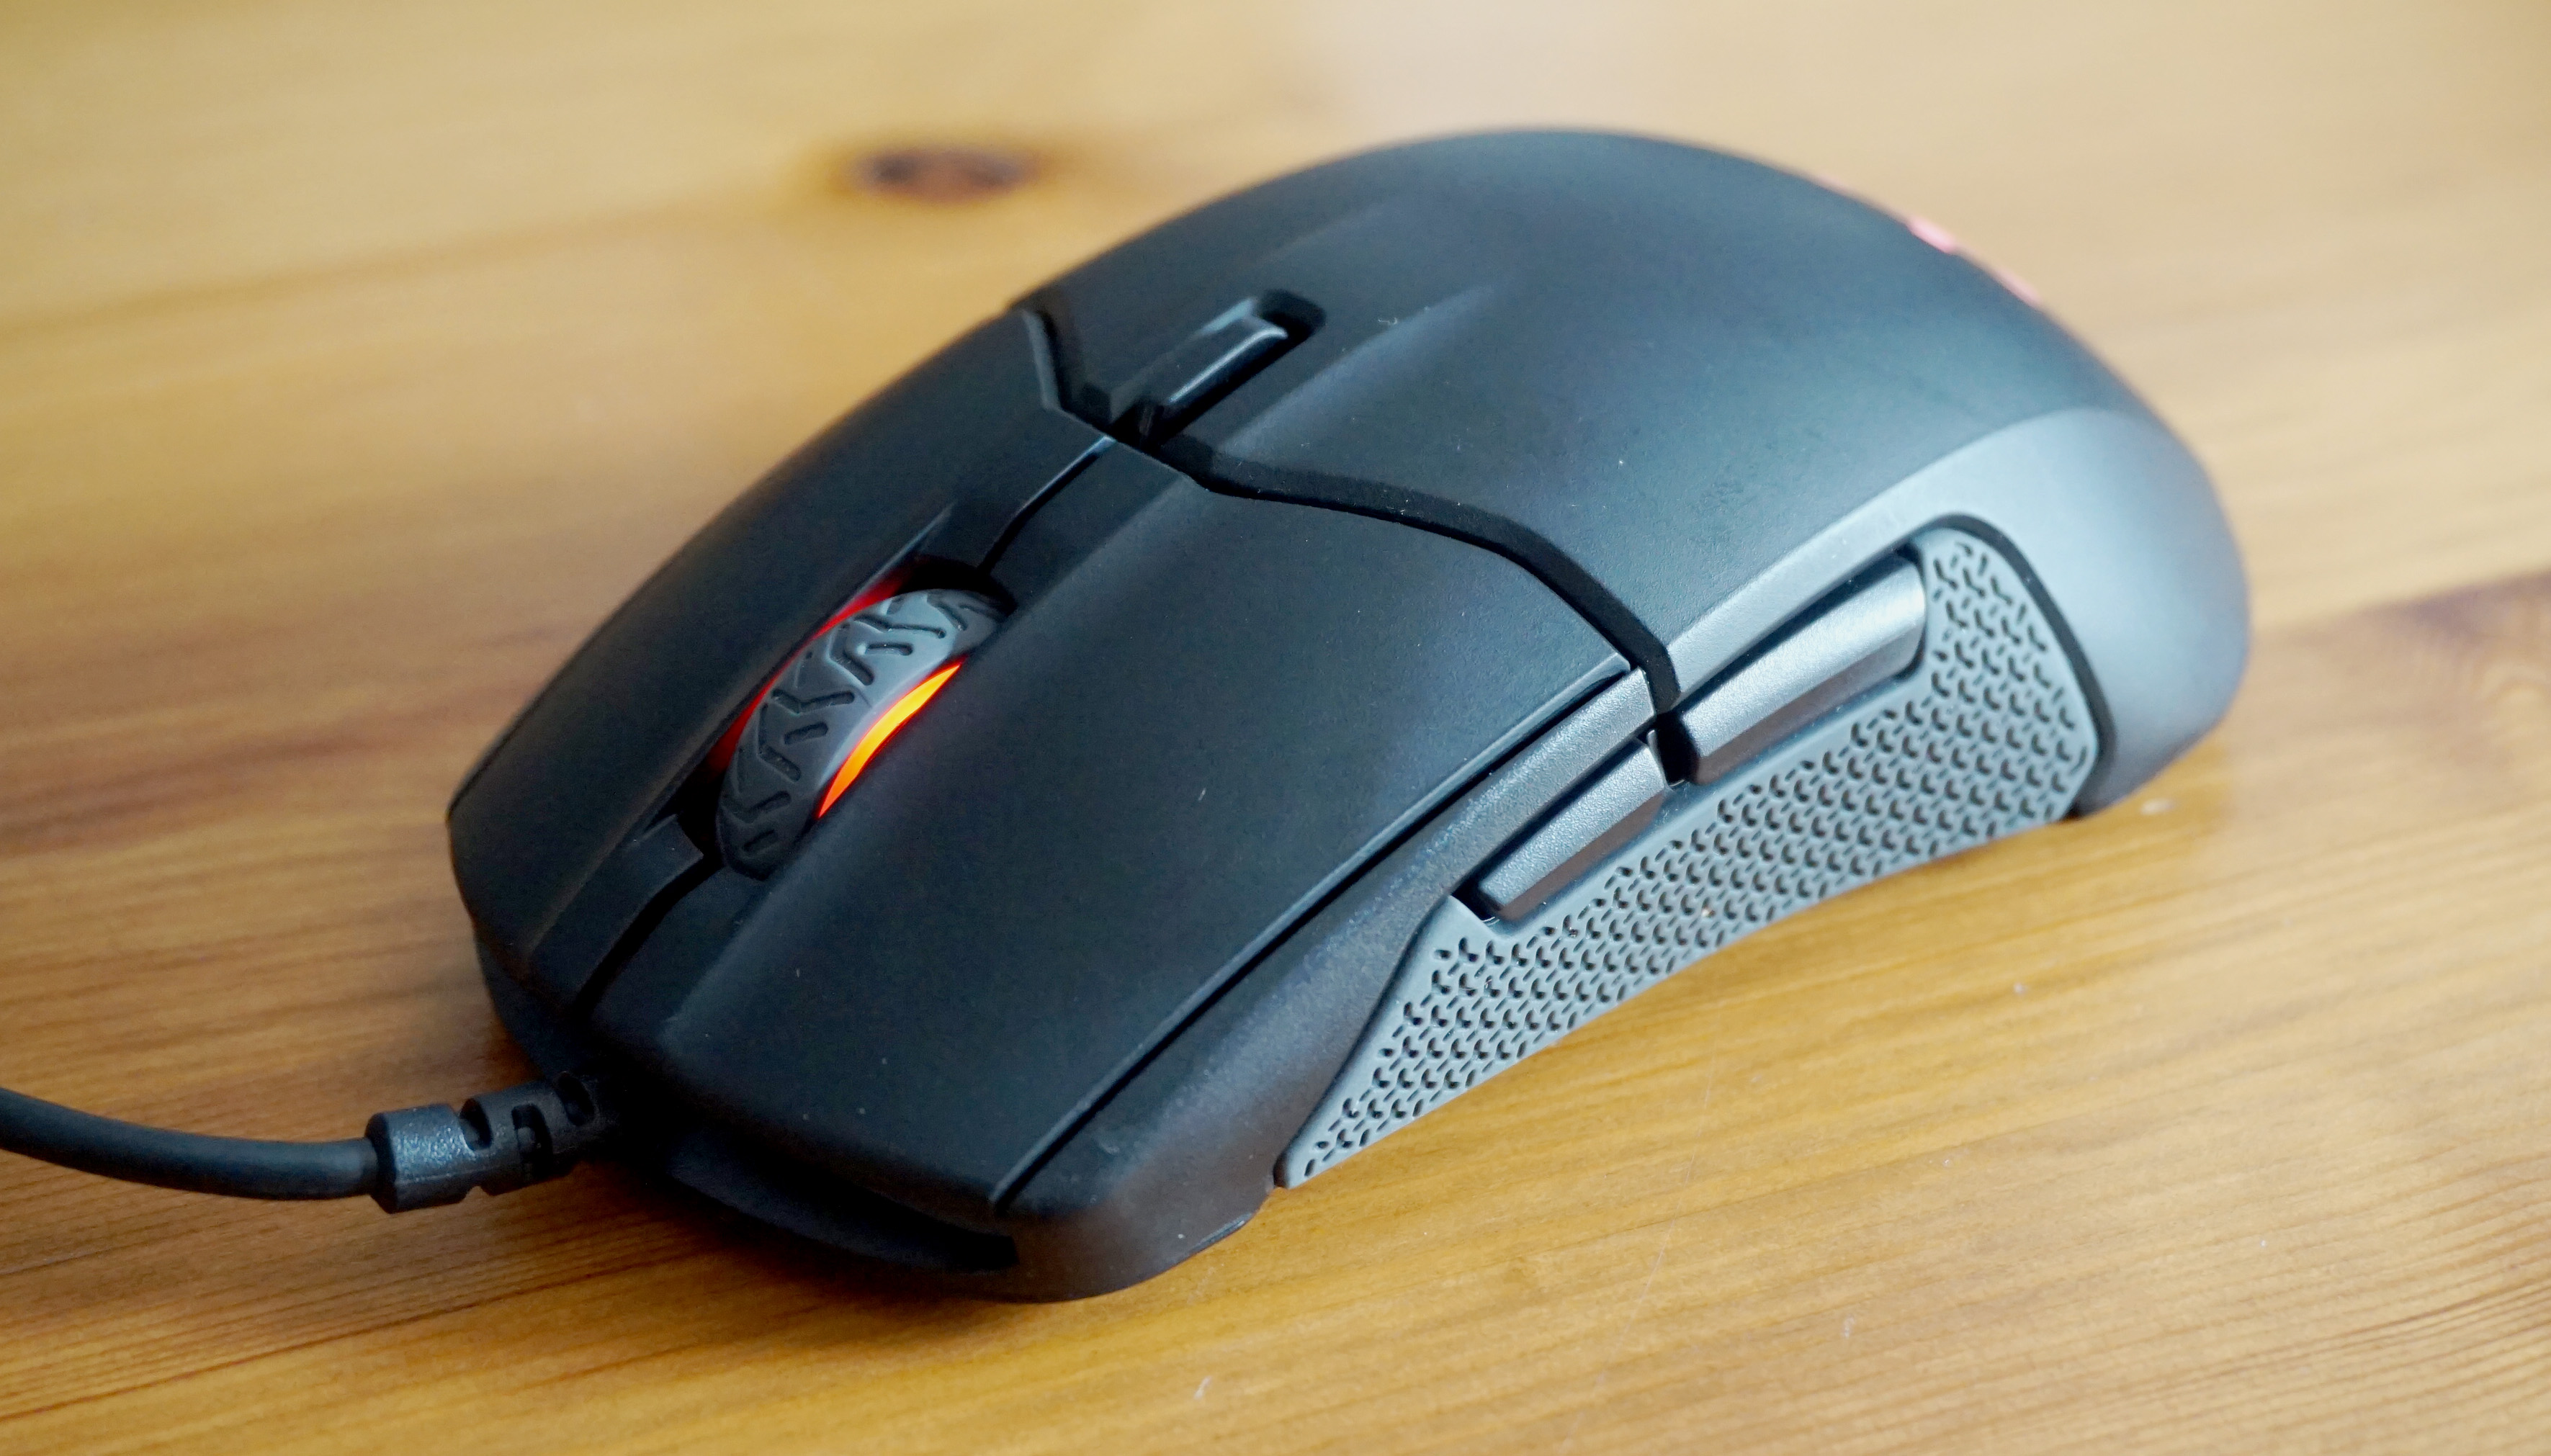 Steelseries Sensei 310 - Best gaming mouse 2020